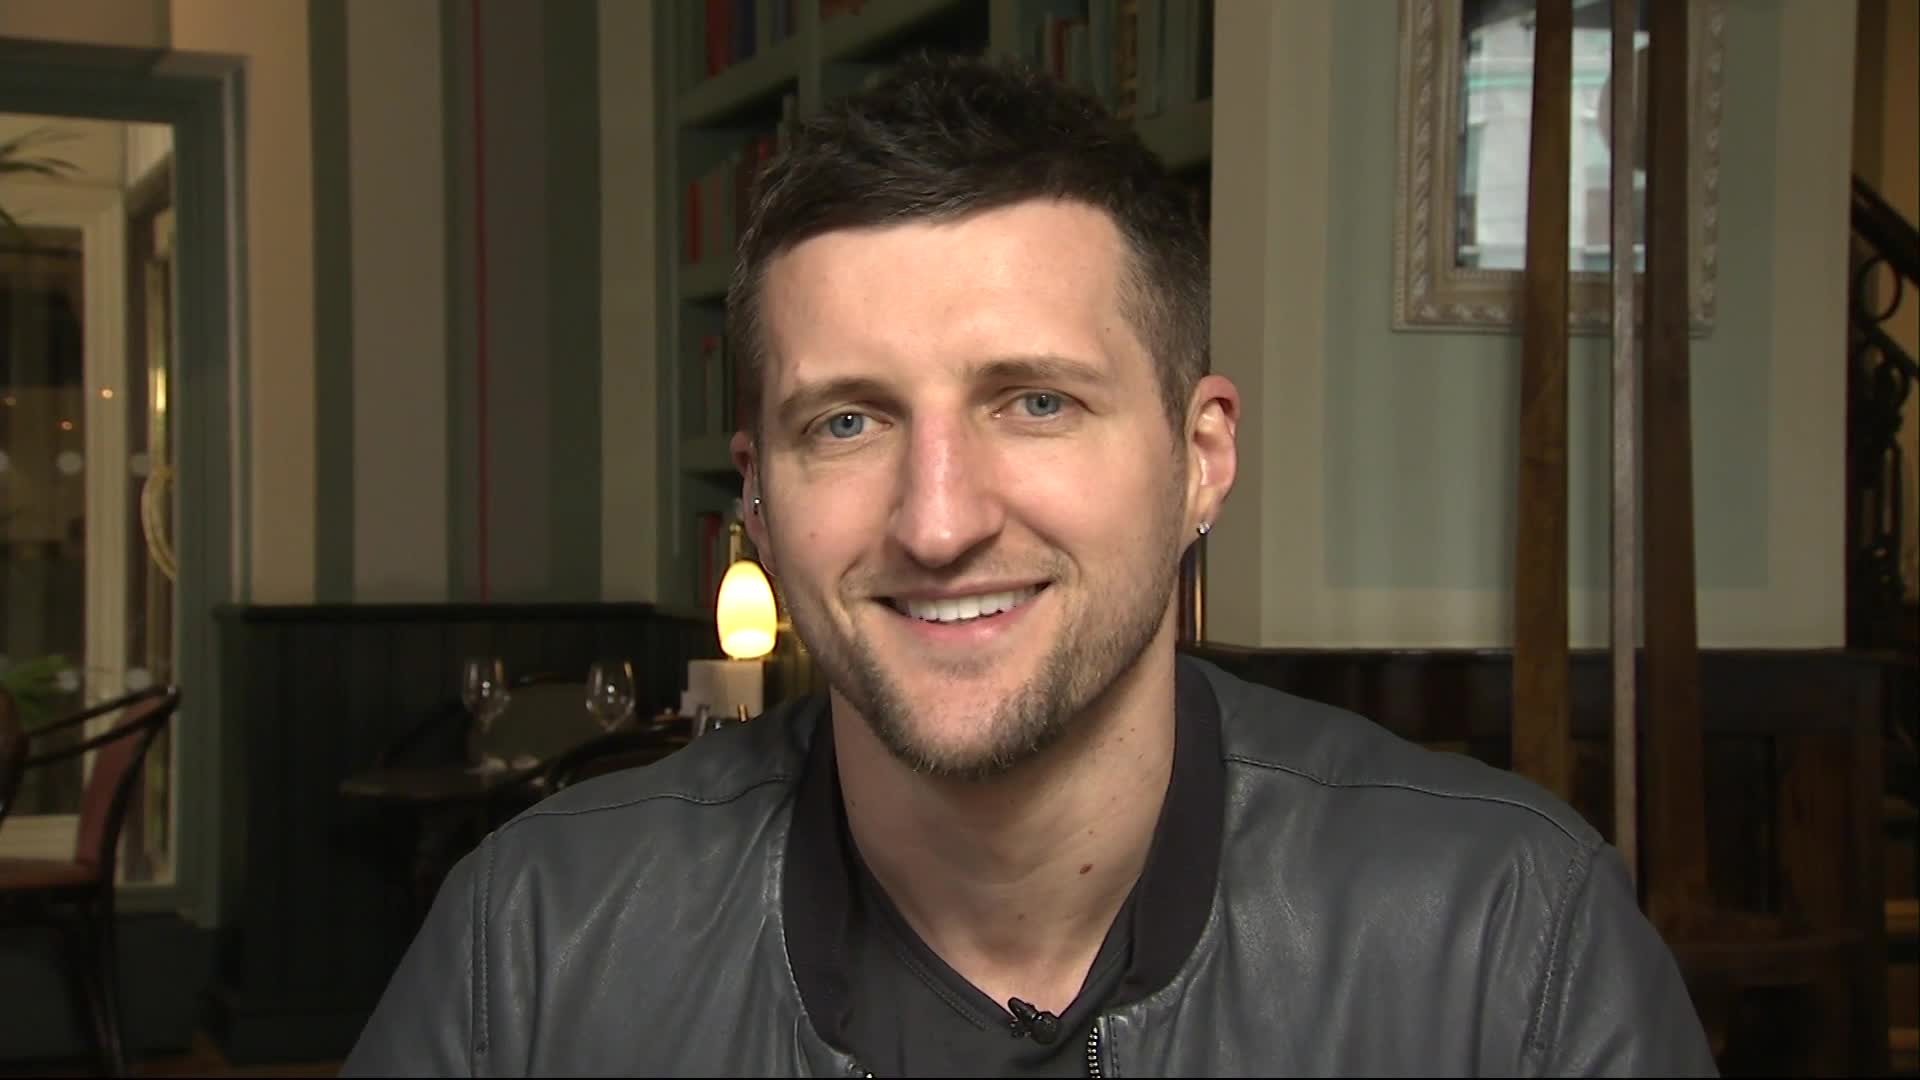 carl froch height  weight  age and body measurements